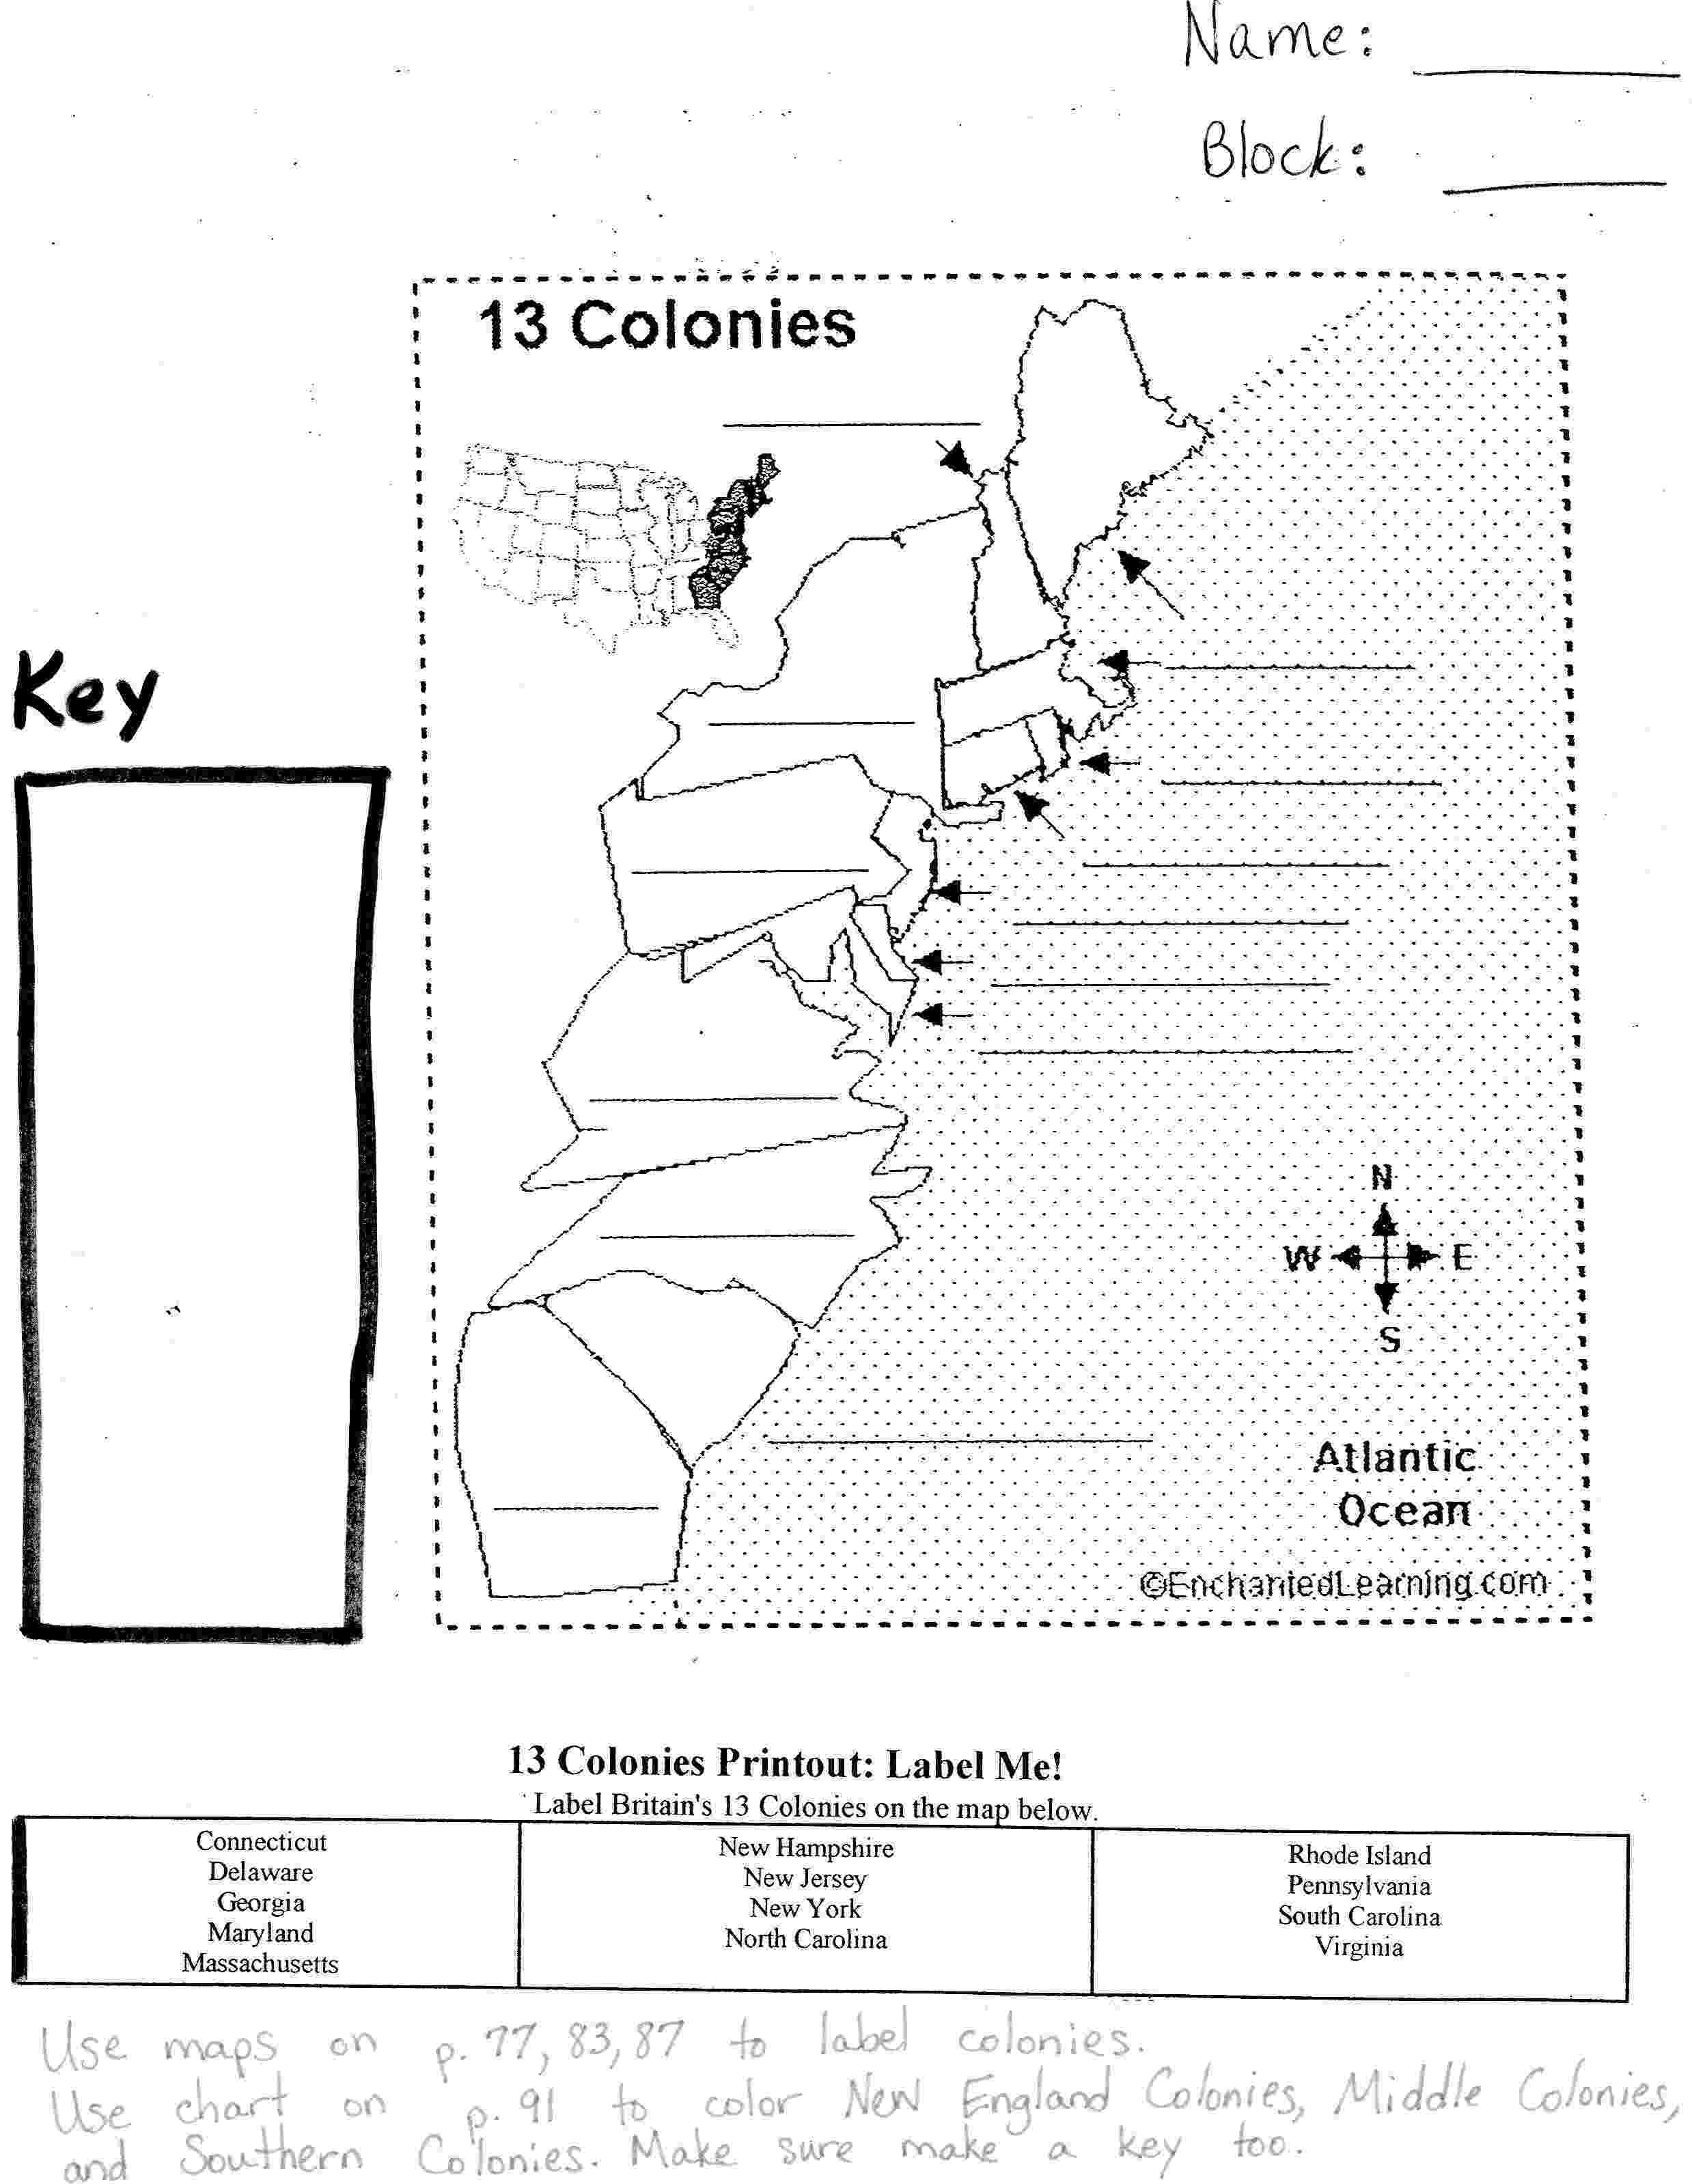 blank 13 colonies map pam oliver wiki feet pam oliver wiki feet blank colonies map 13